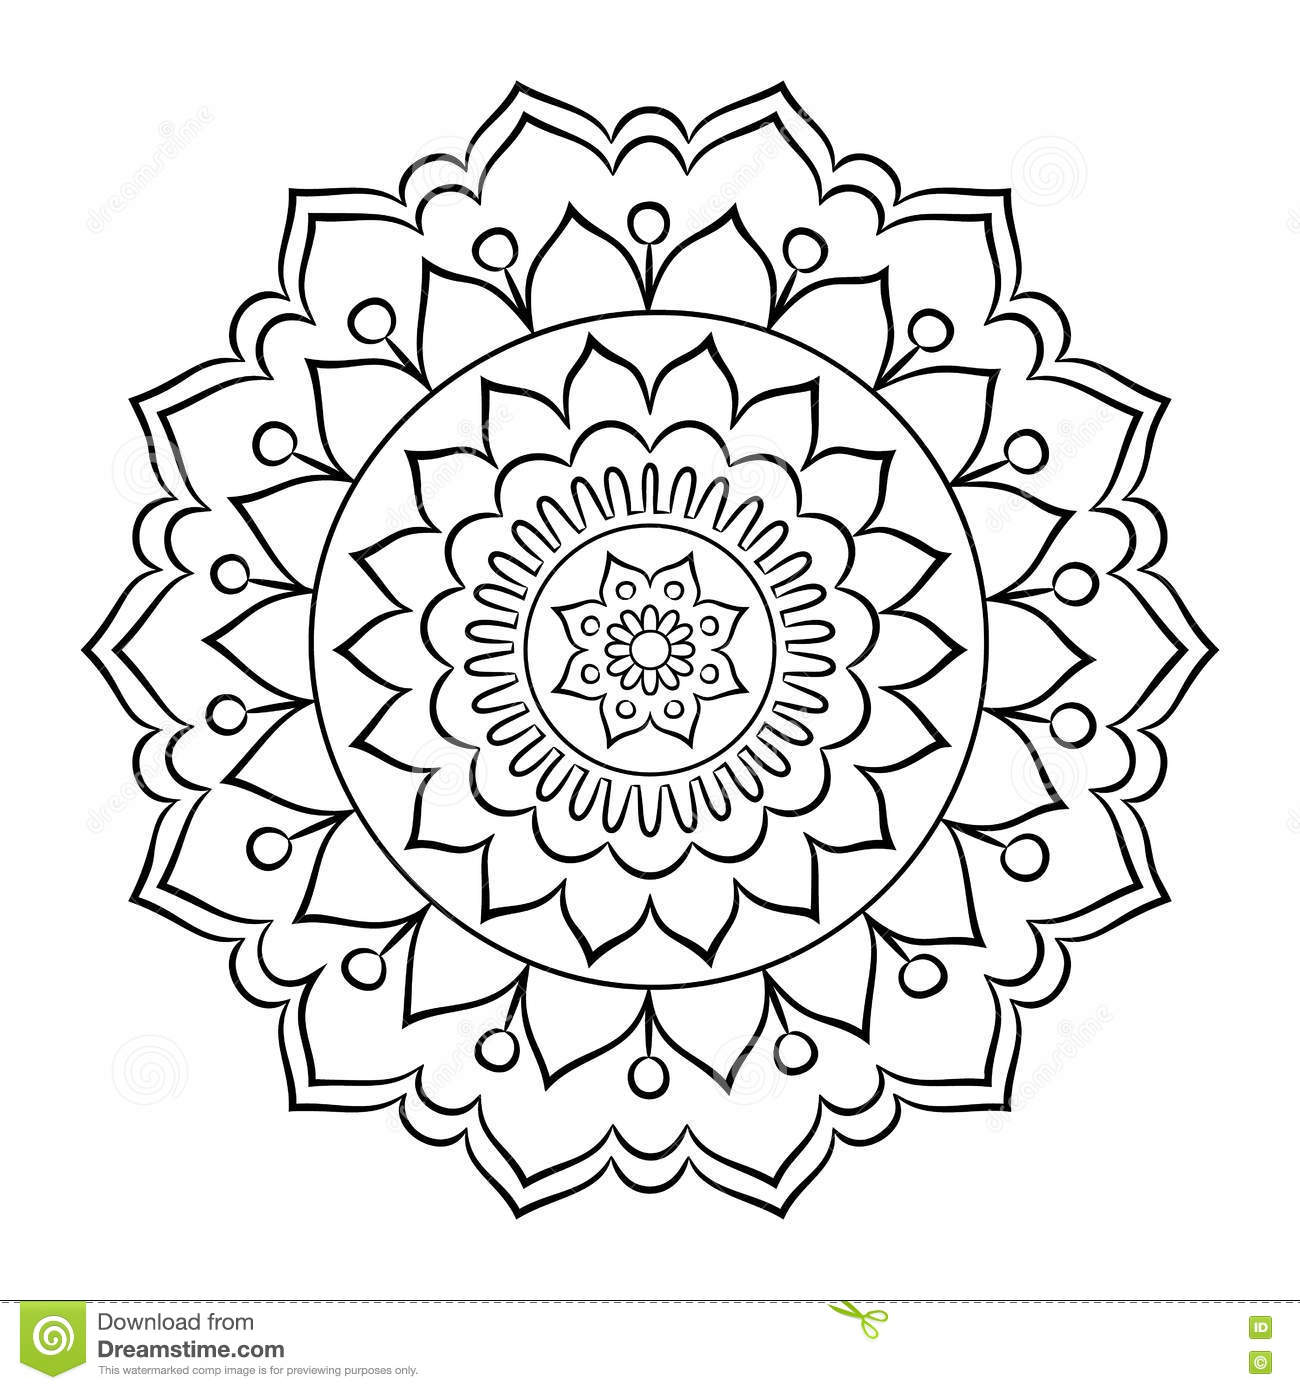 Doodle Mandala Coloring Page Stock Vector - Illustration of card ...